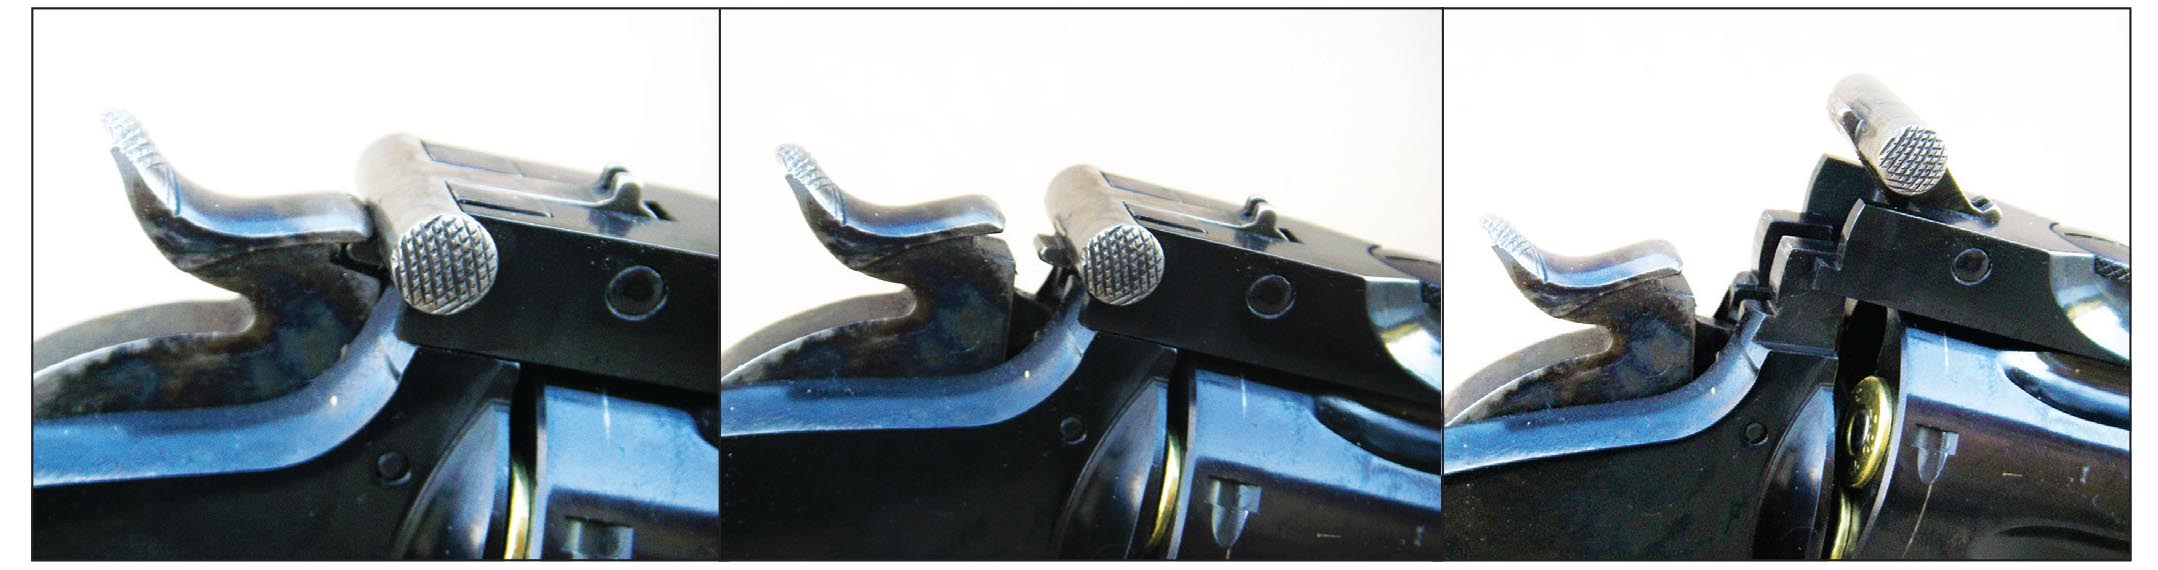 With the hammer in the down position, the action cannot open. With the hammer pulled back to the first notch, the action can be opened to load and unload by pulling the locking latch upward.